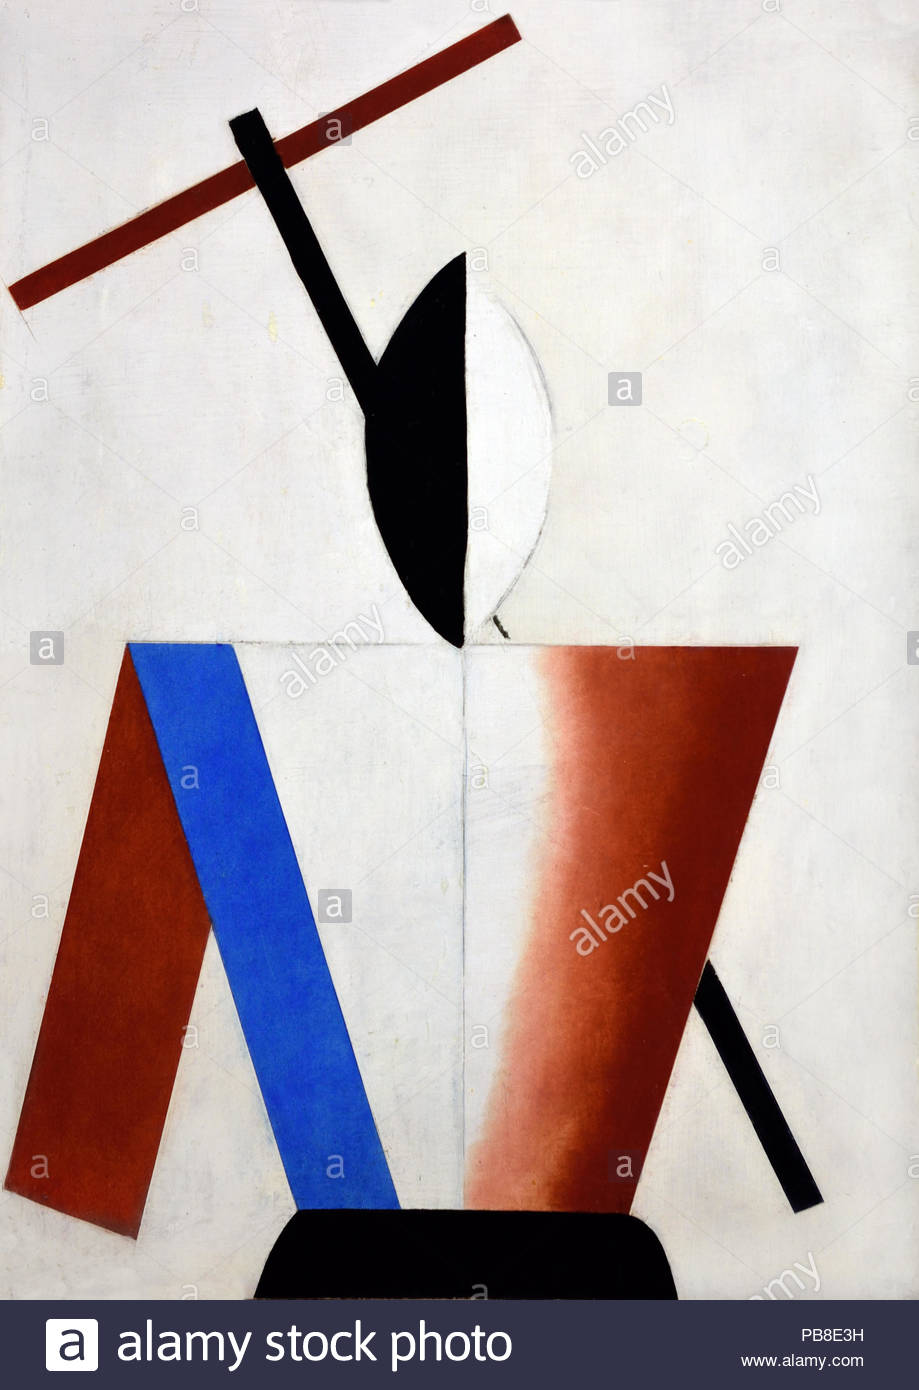 Woman with Cross 1928 Nikolai Suetin 1897 – 1954 was a Russian Suprematist artist. He worked as a graphic artist, a designer, and a ceramics painter. Russia, USSR. - Stock Image